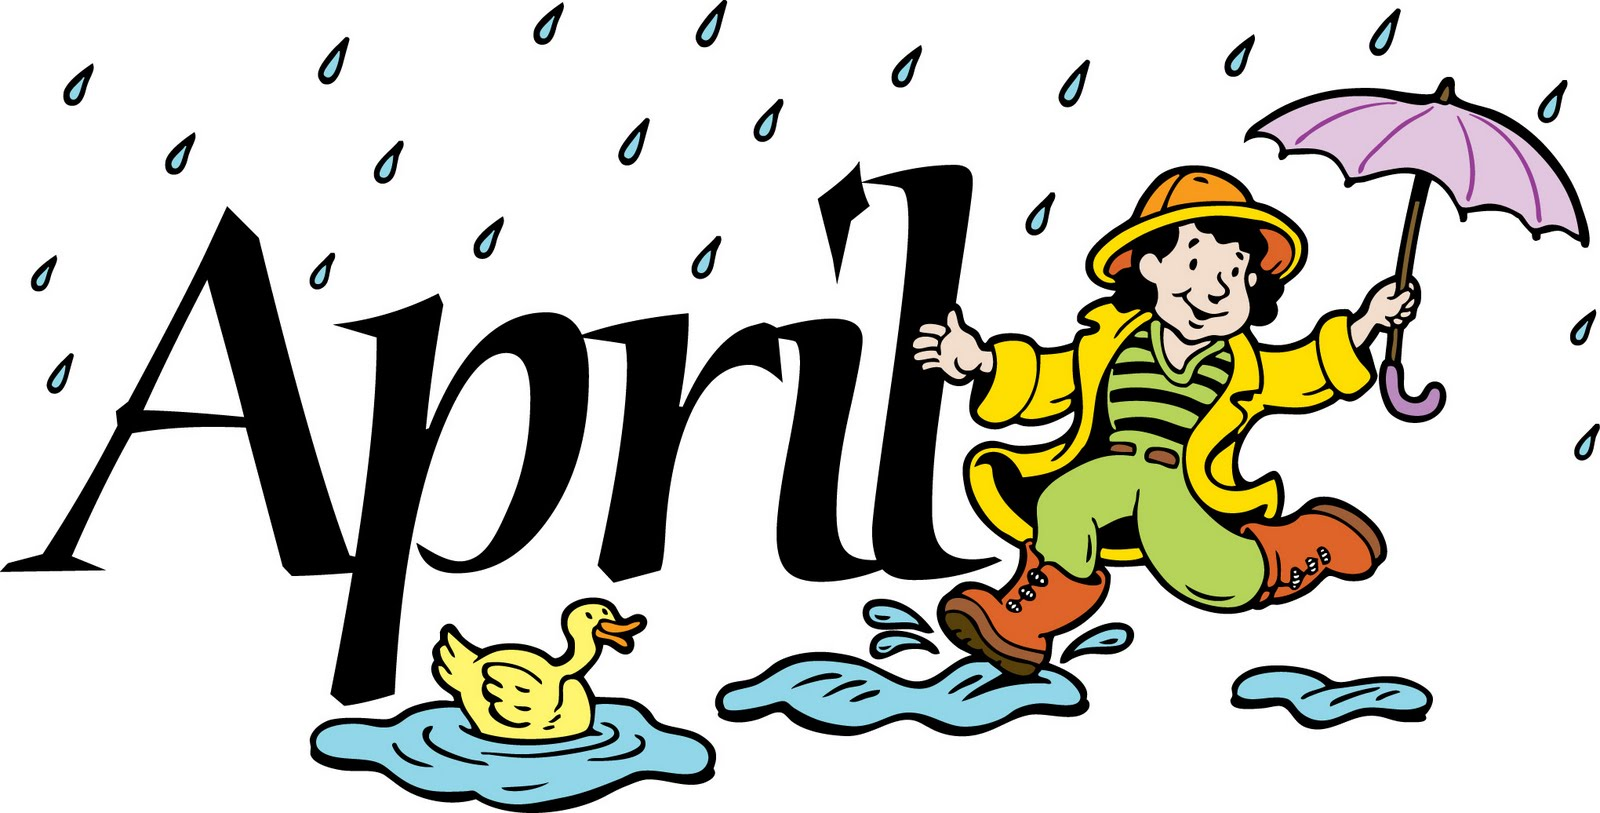 Free month of april clip art .-Free month of april clip art .-9